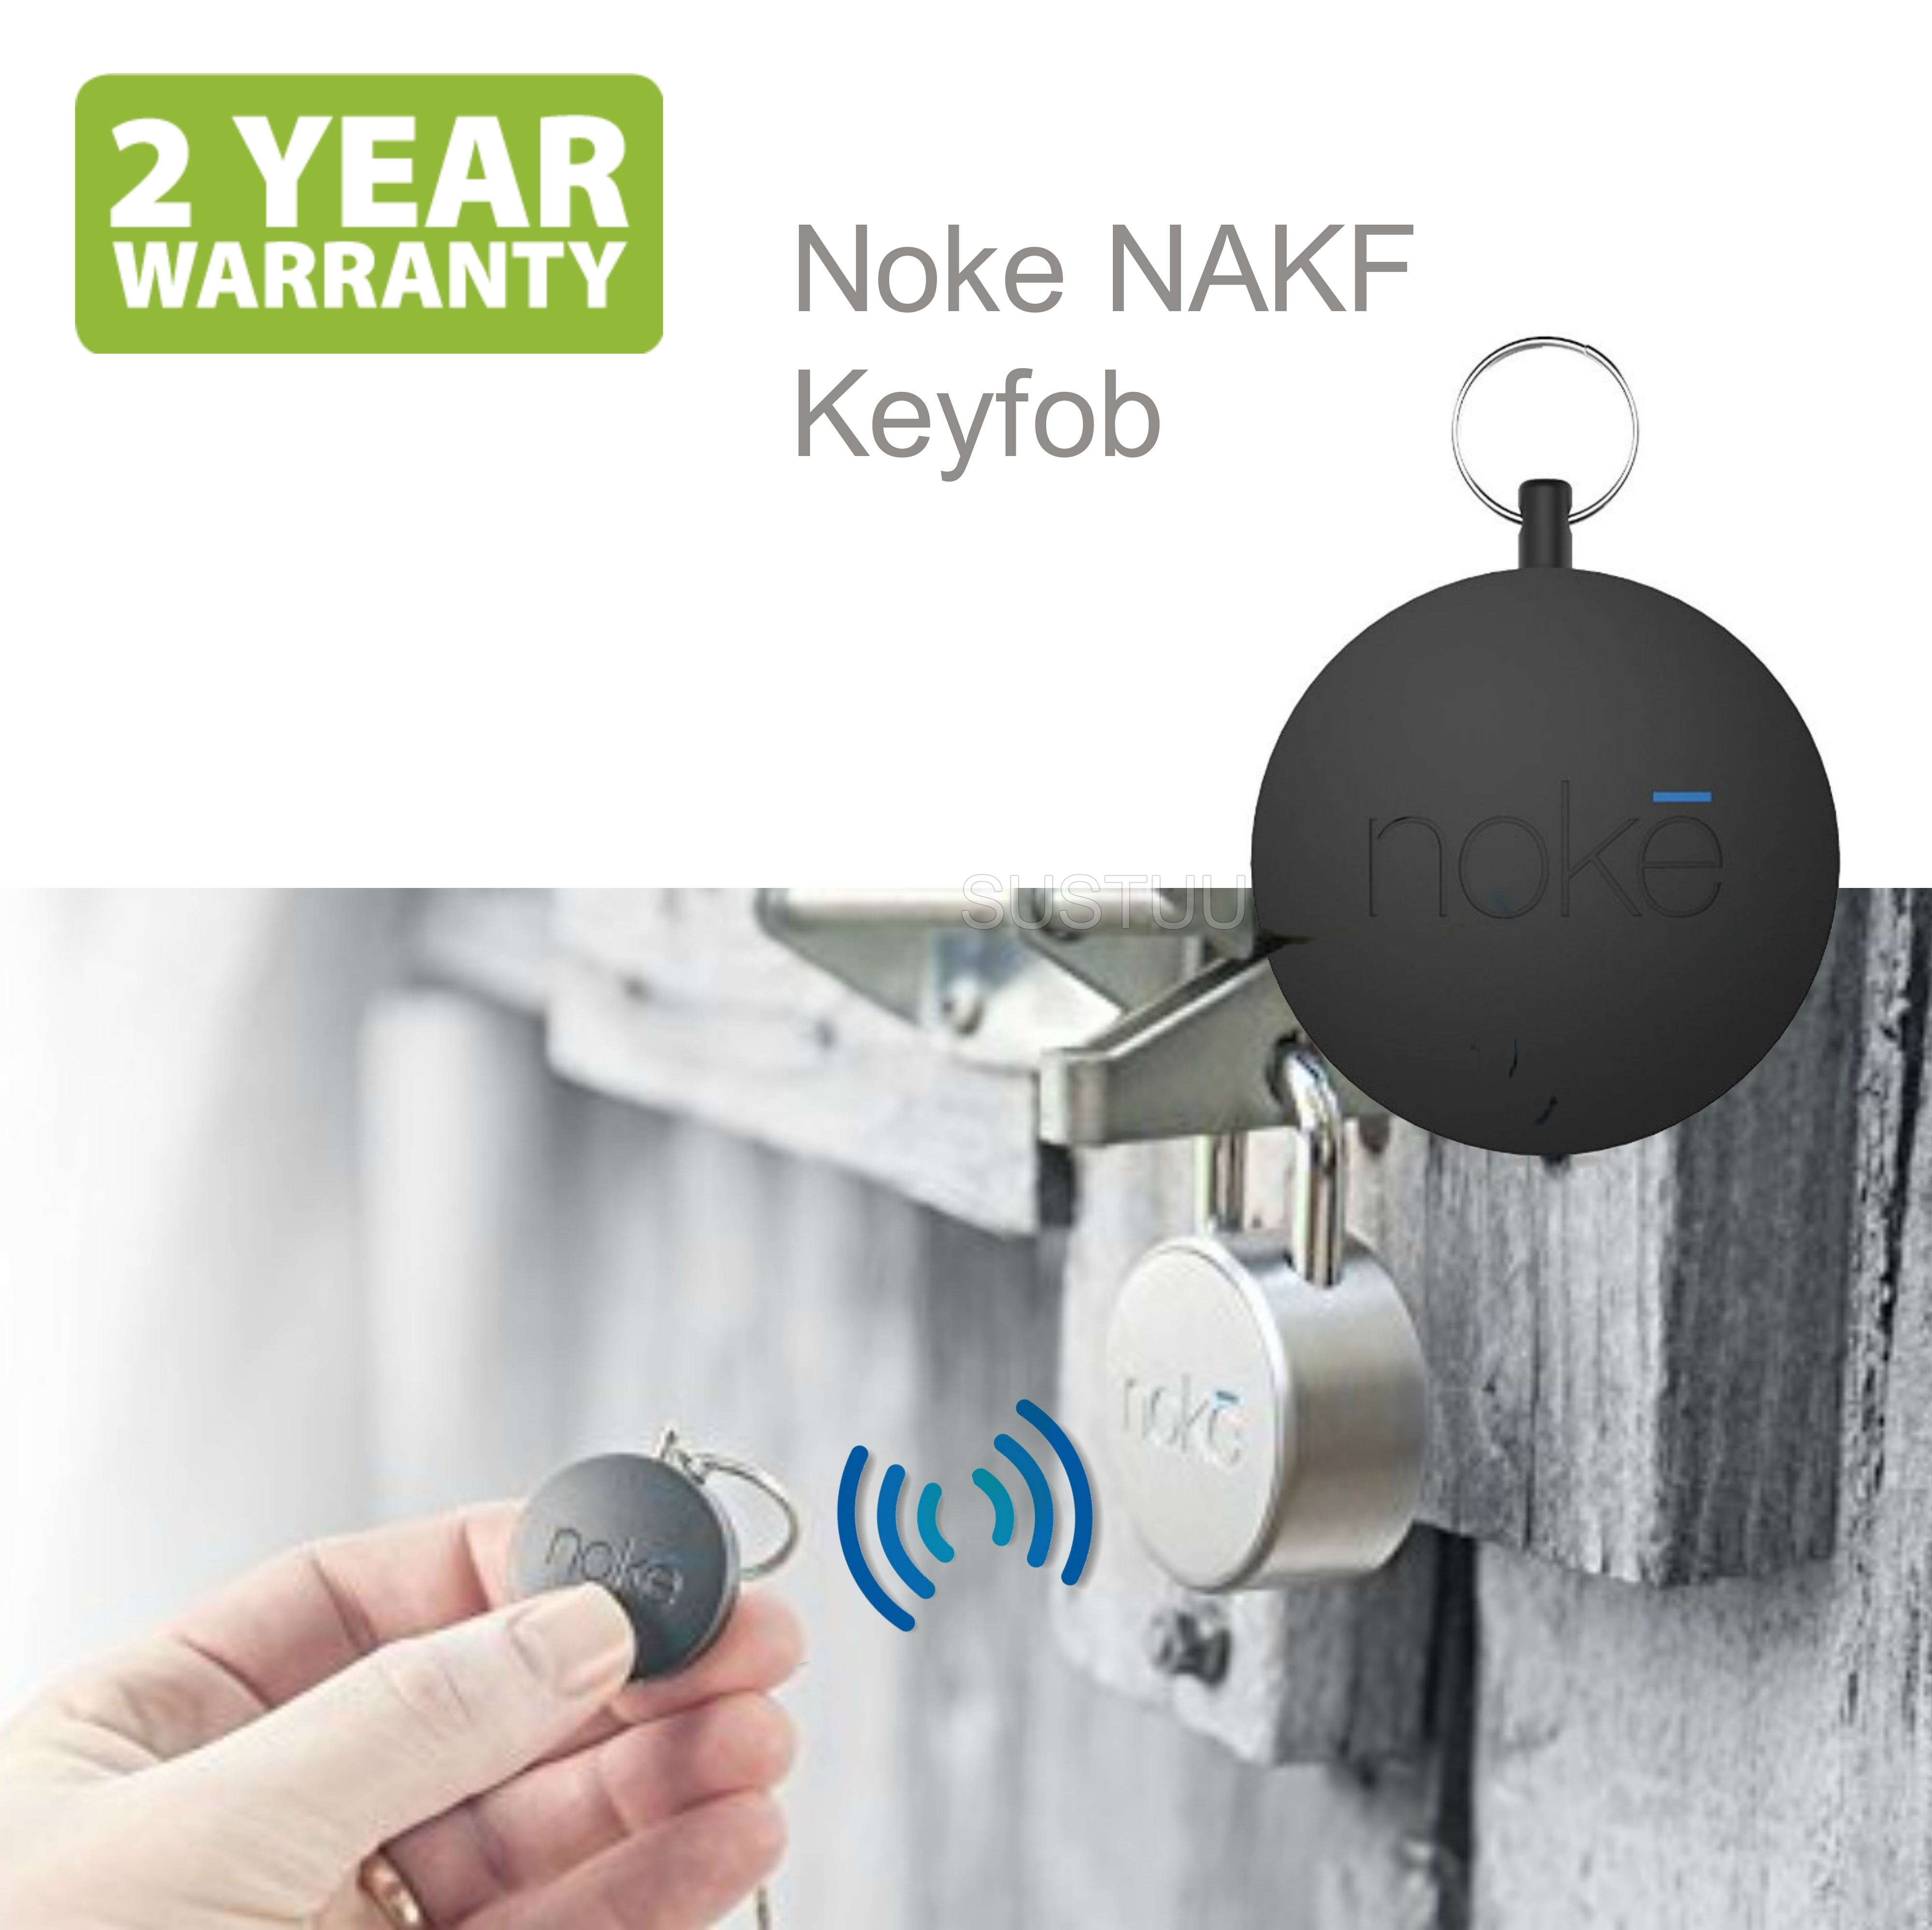 Noke NAKF Keyfob Bluetooth Smart Key|No Need Smartphone|Unlock Padlock & U-Lock